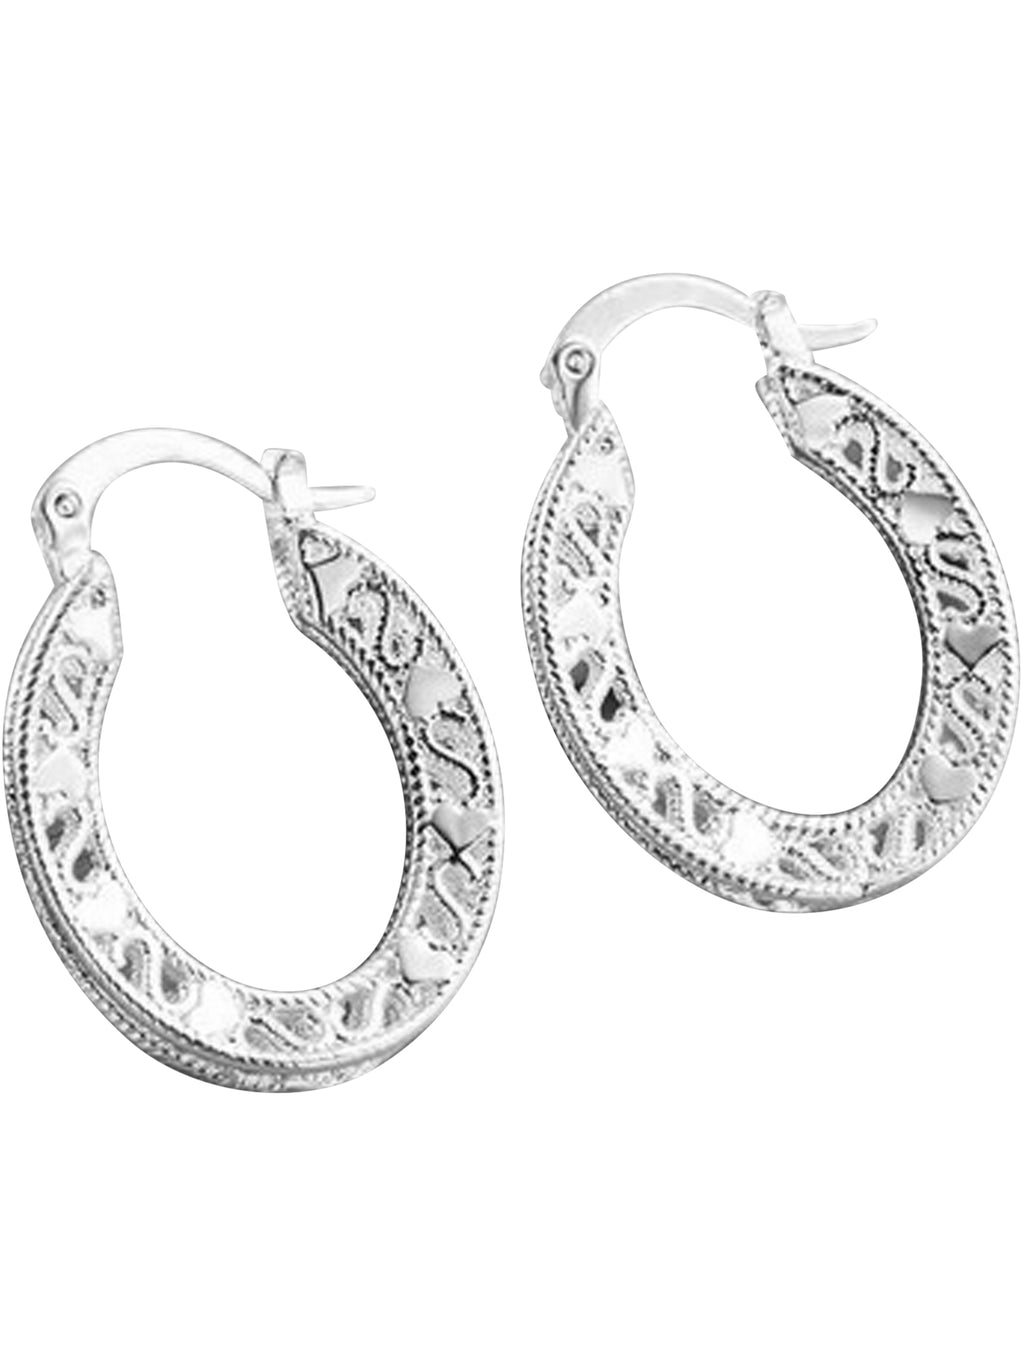 Sterling Silver Plated Heart Filigree Earrings